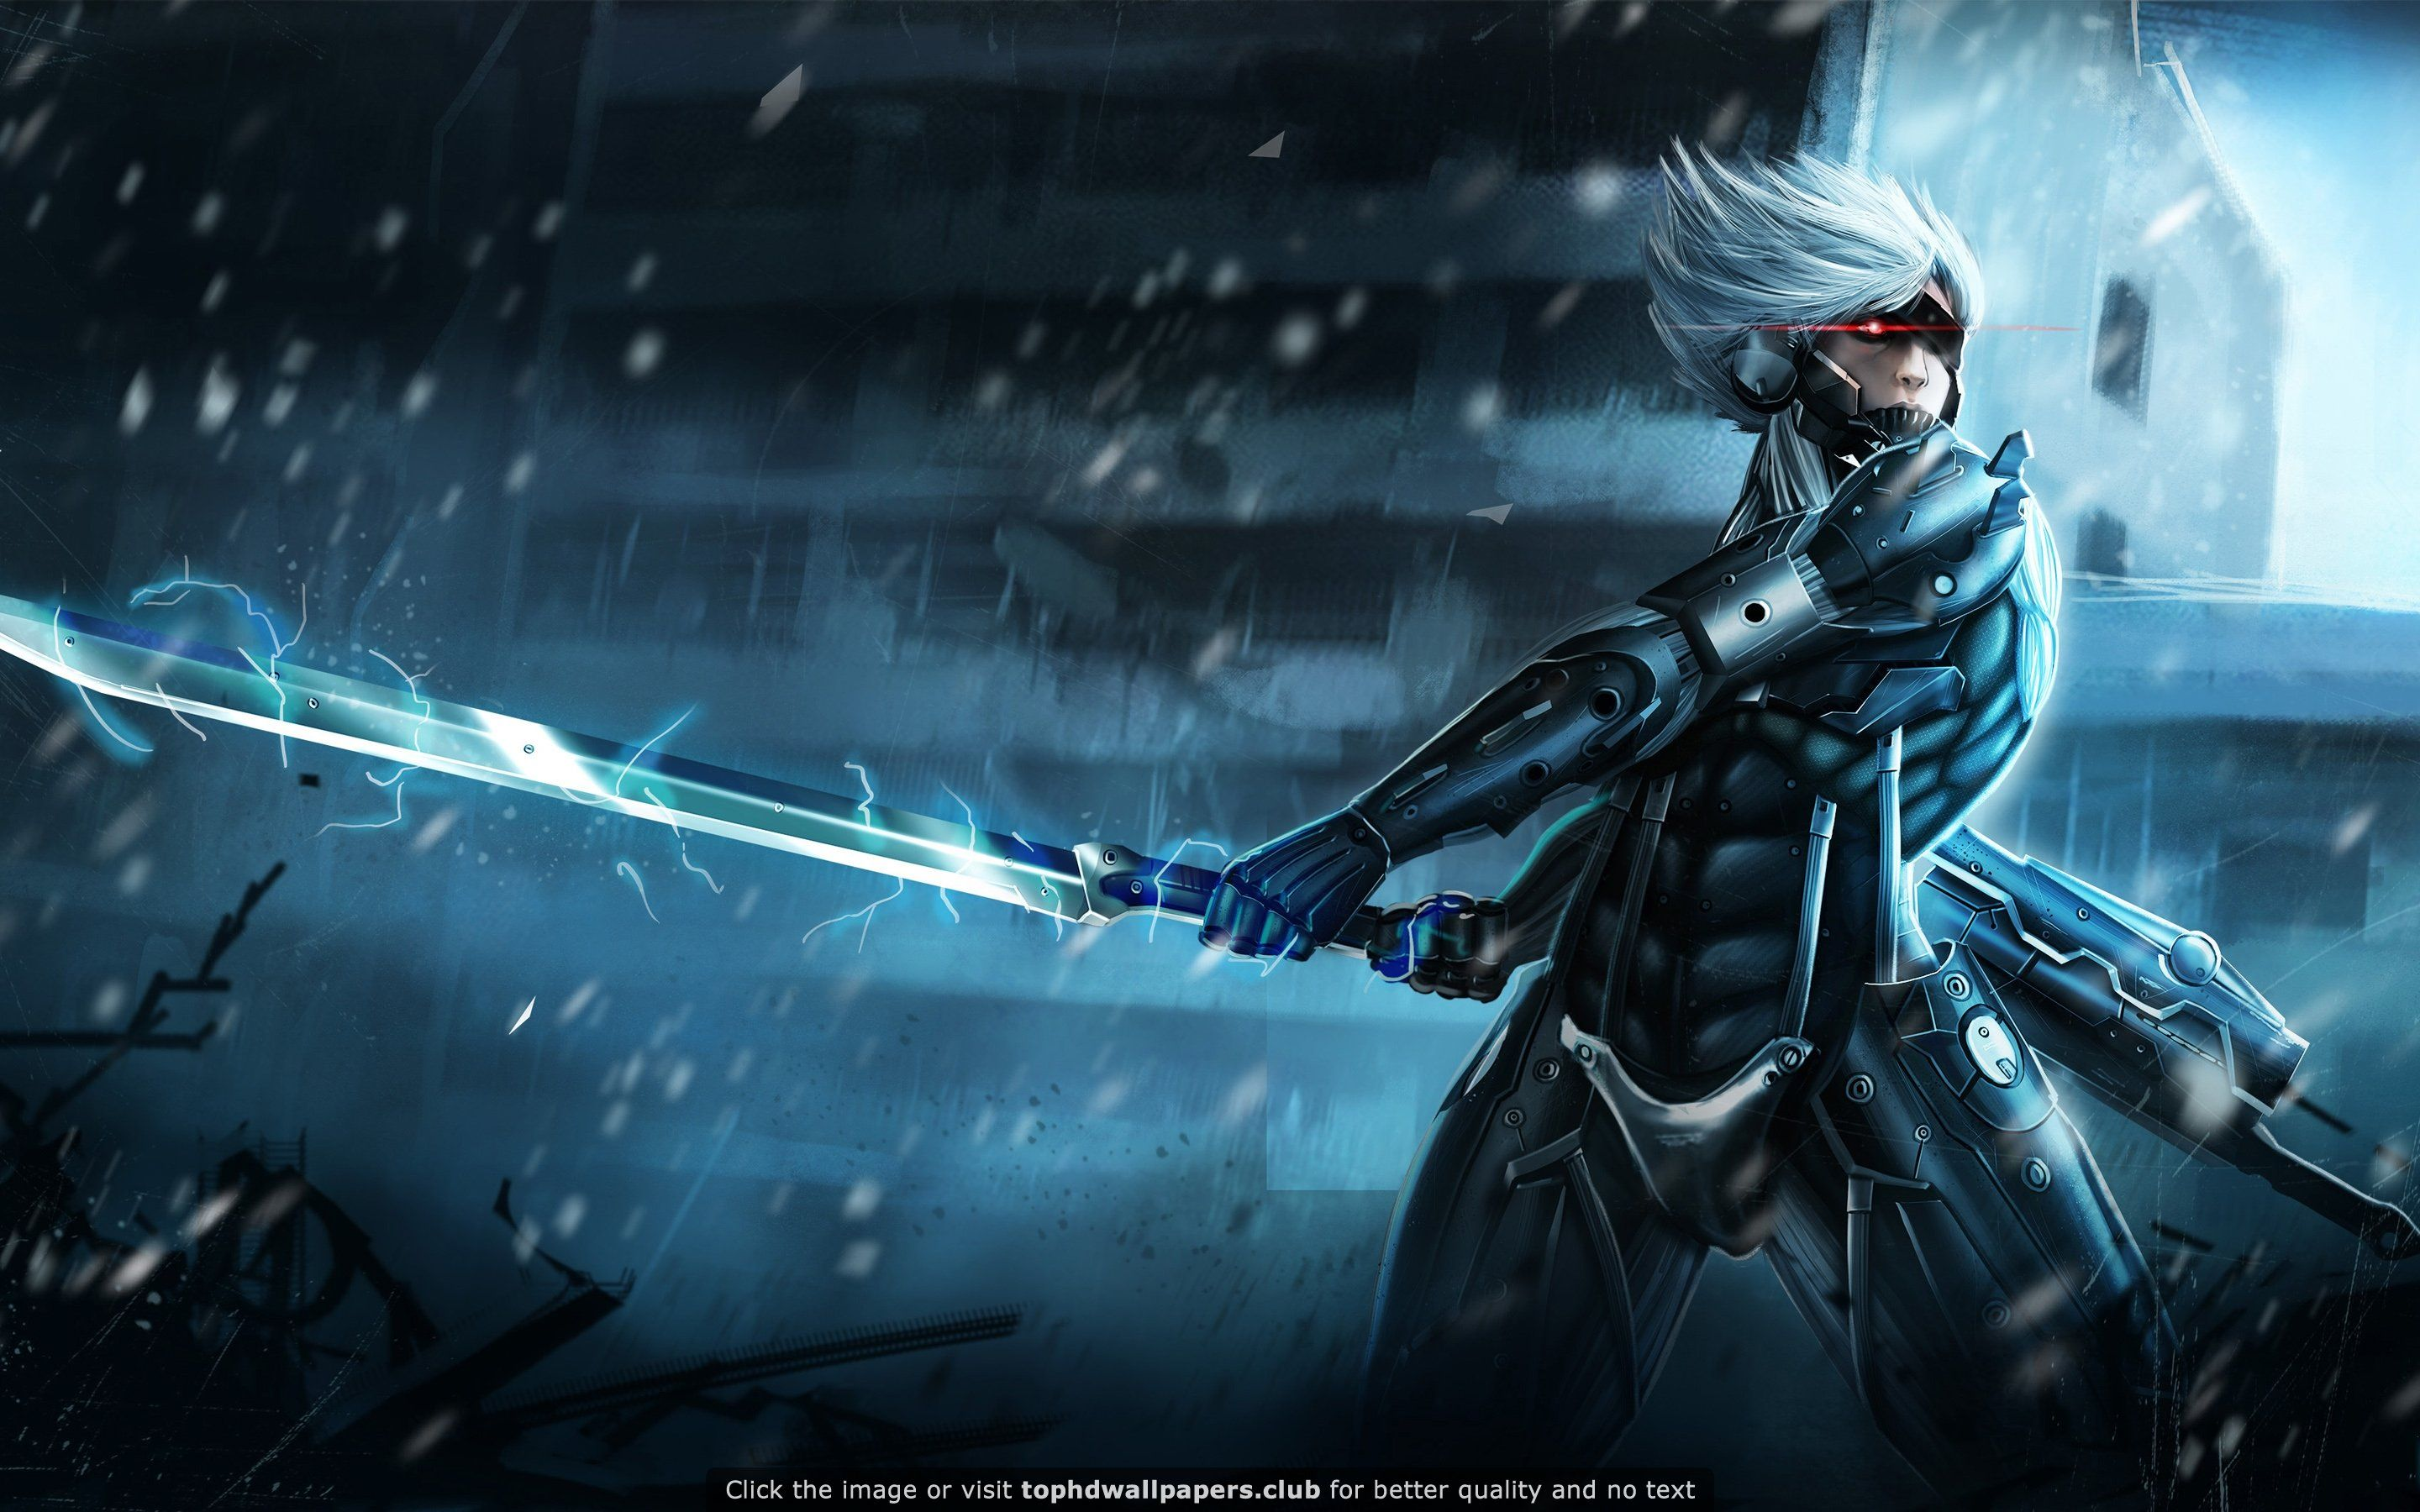 metal gear rising raiden hd wallpaper for your pc, mac or mobile